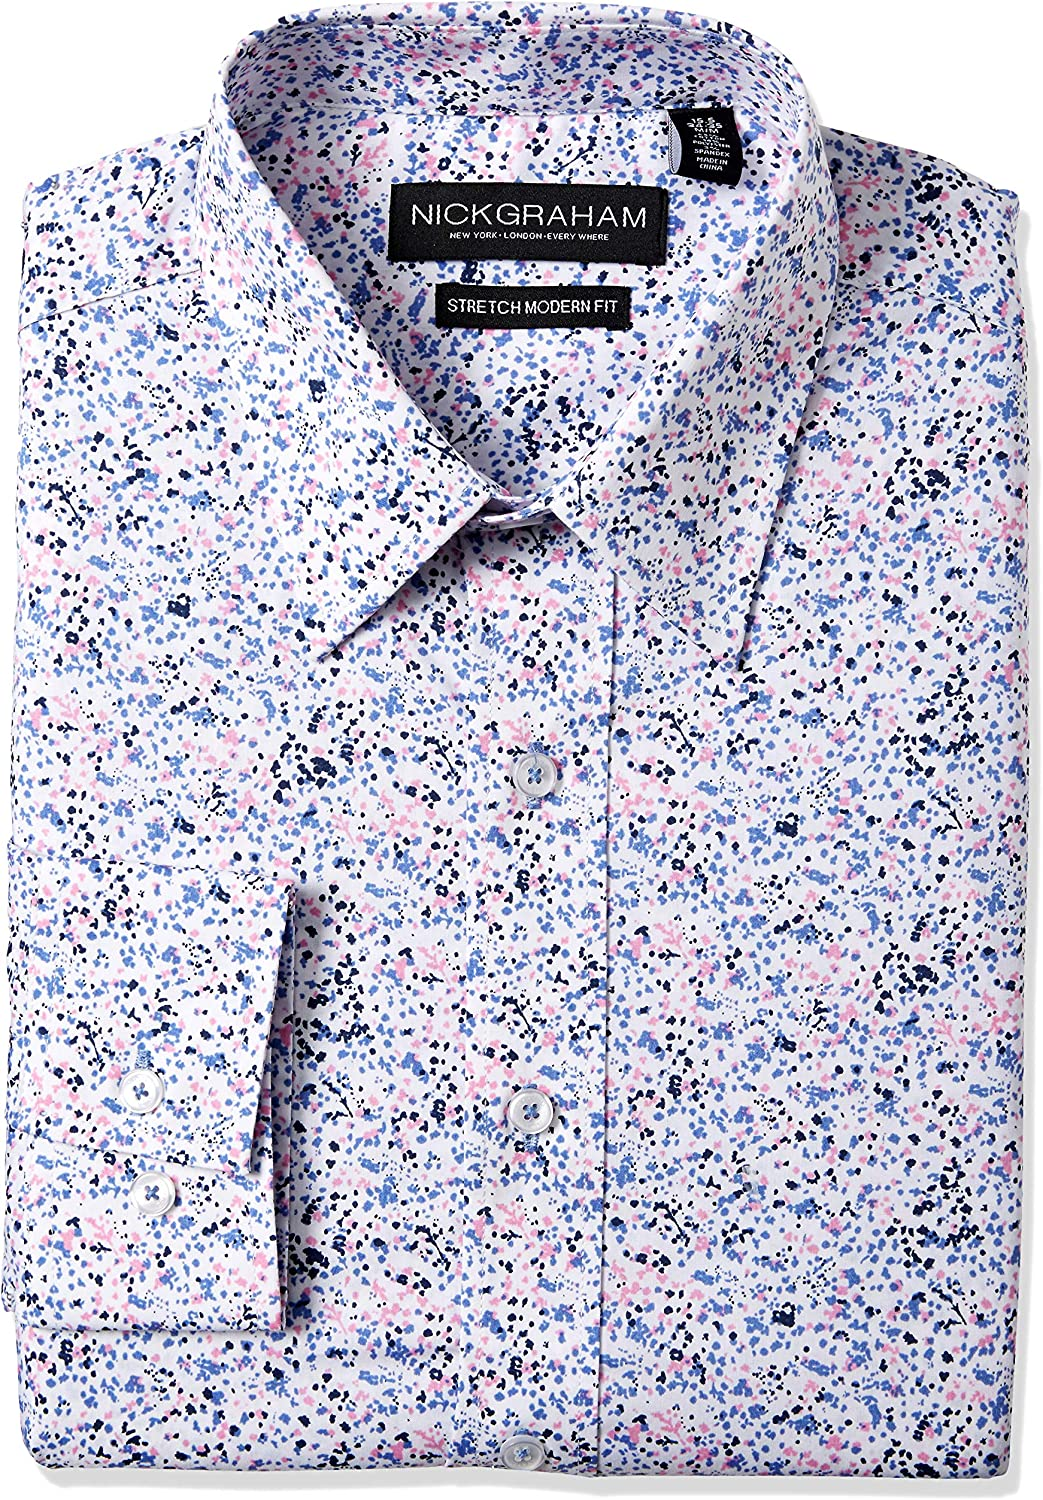 Nick Graham Men's Floral Performance Stretch Cotton Blend Dress Shirt